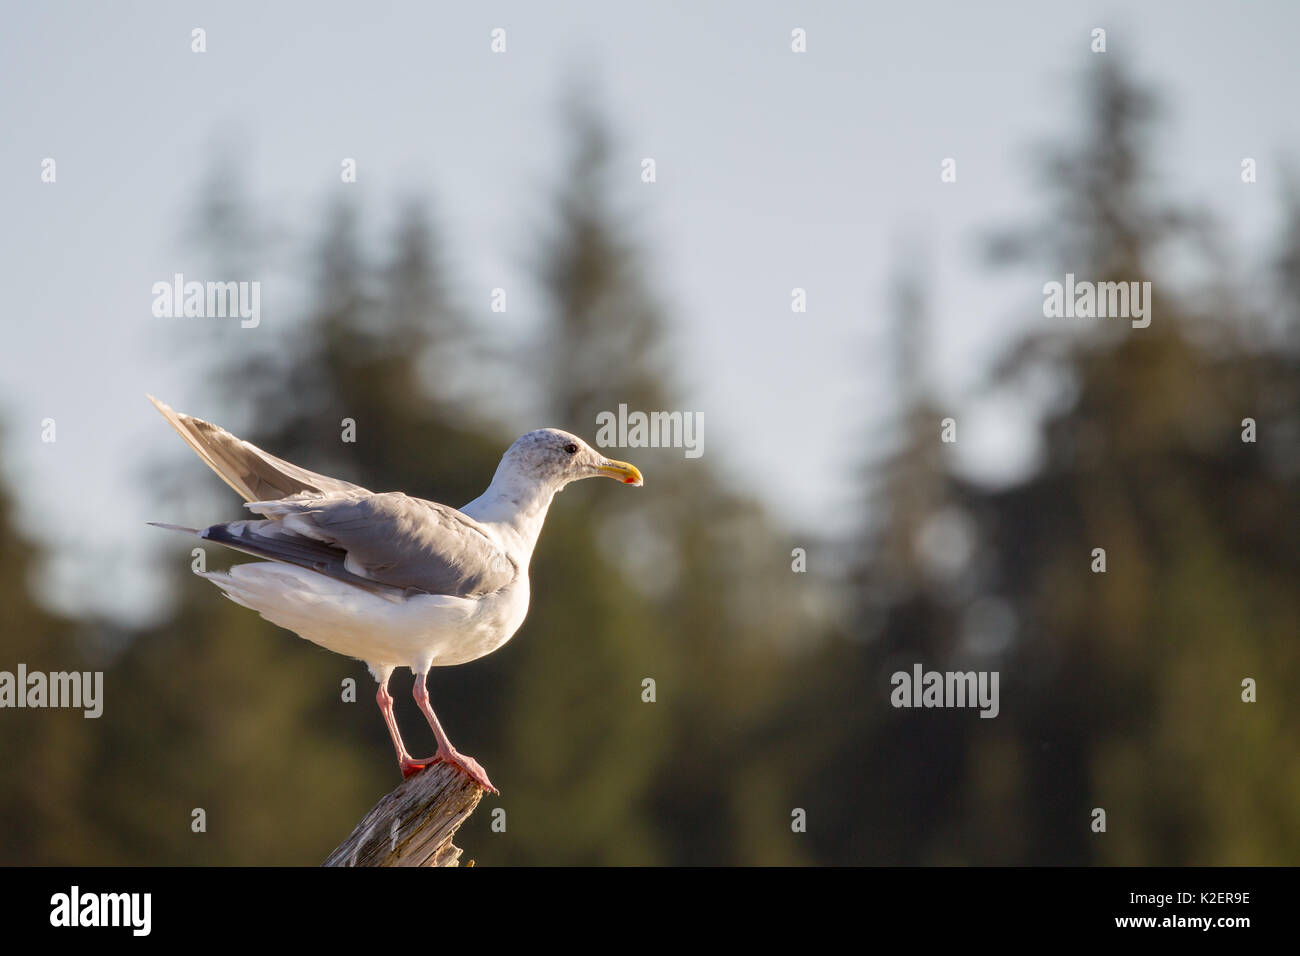 Glaucous-winged gull (Larus glaucescens) sitting on a tree trunk at the beach of Port Renfrew on Vancouver Island, British Columbia, Canada. - Stock Image